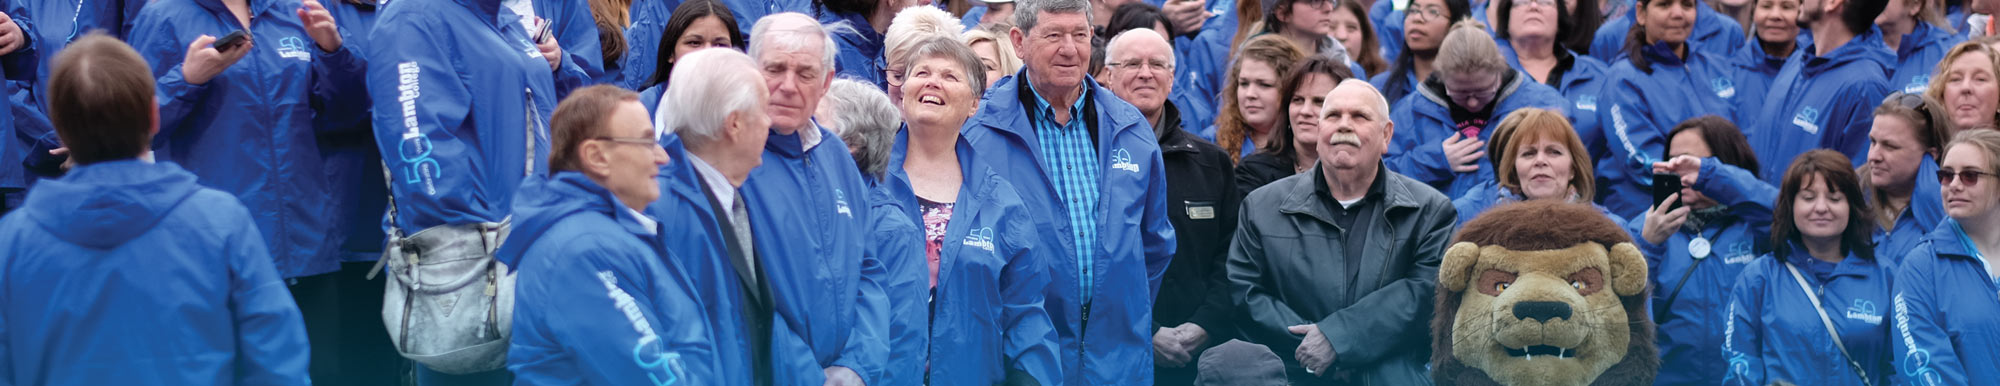 A group of college employees and retirees wearing blue Lambton 50 jackets, gathered around Pounce the mascot